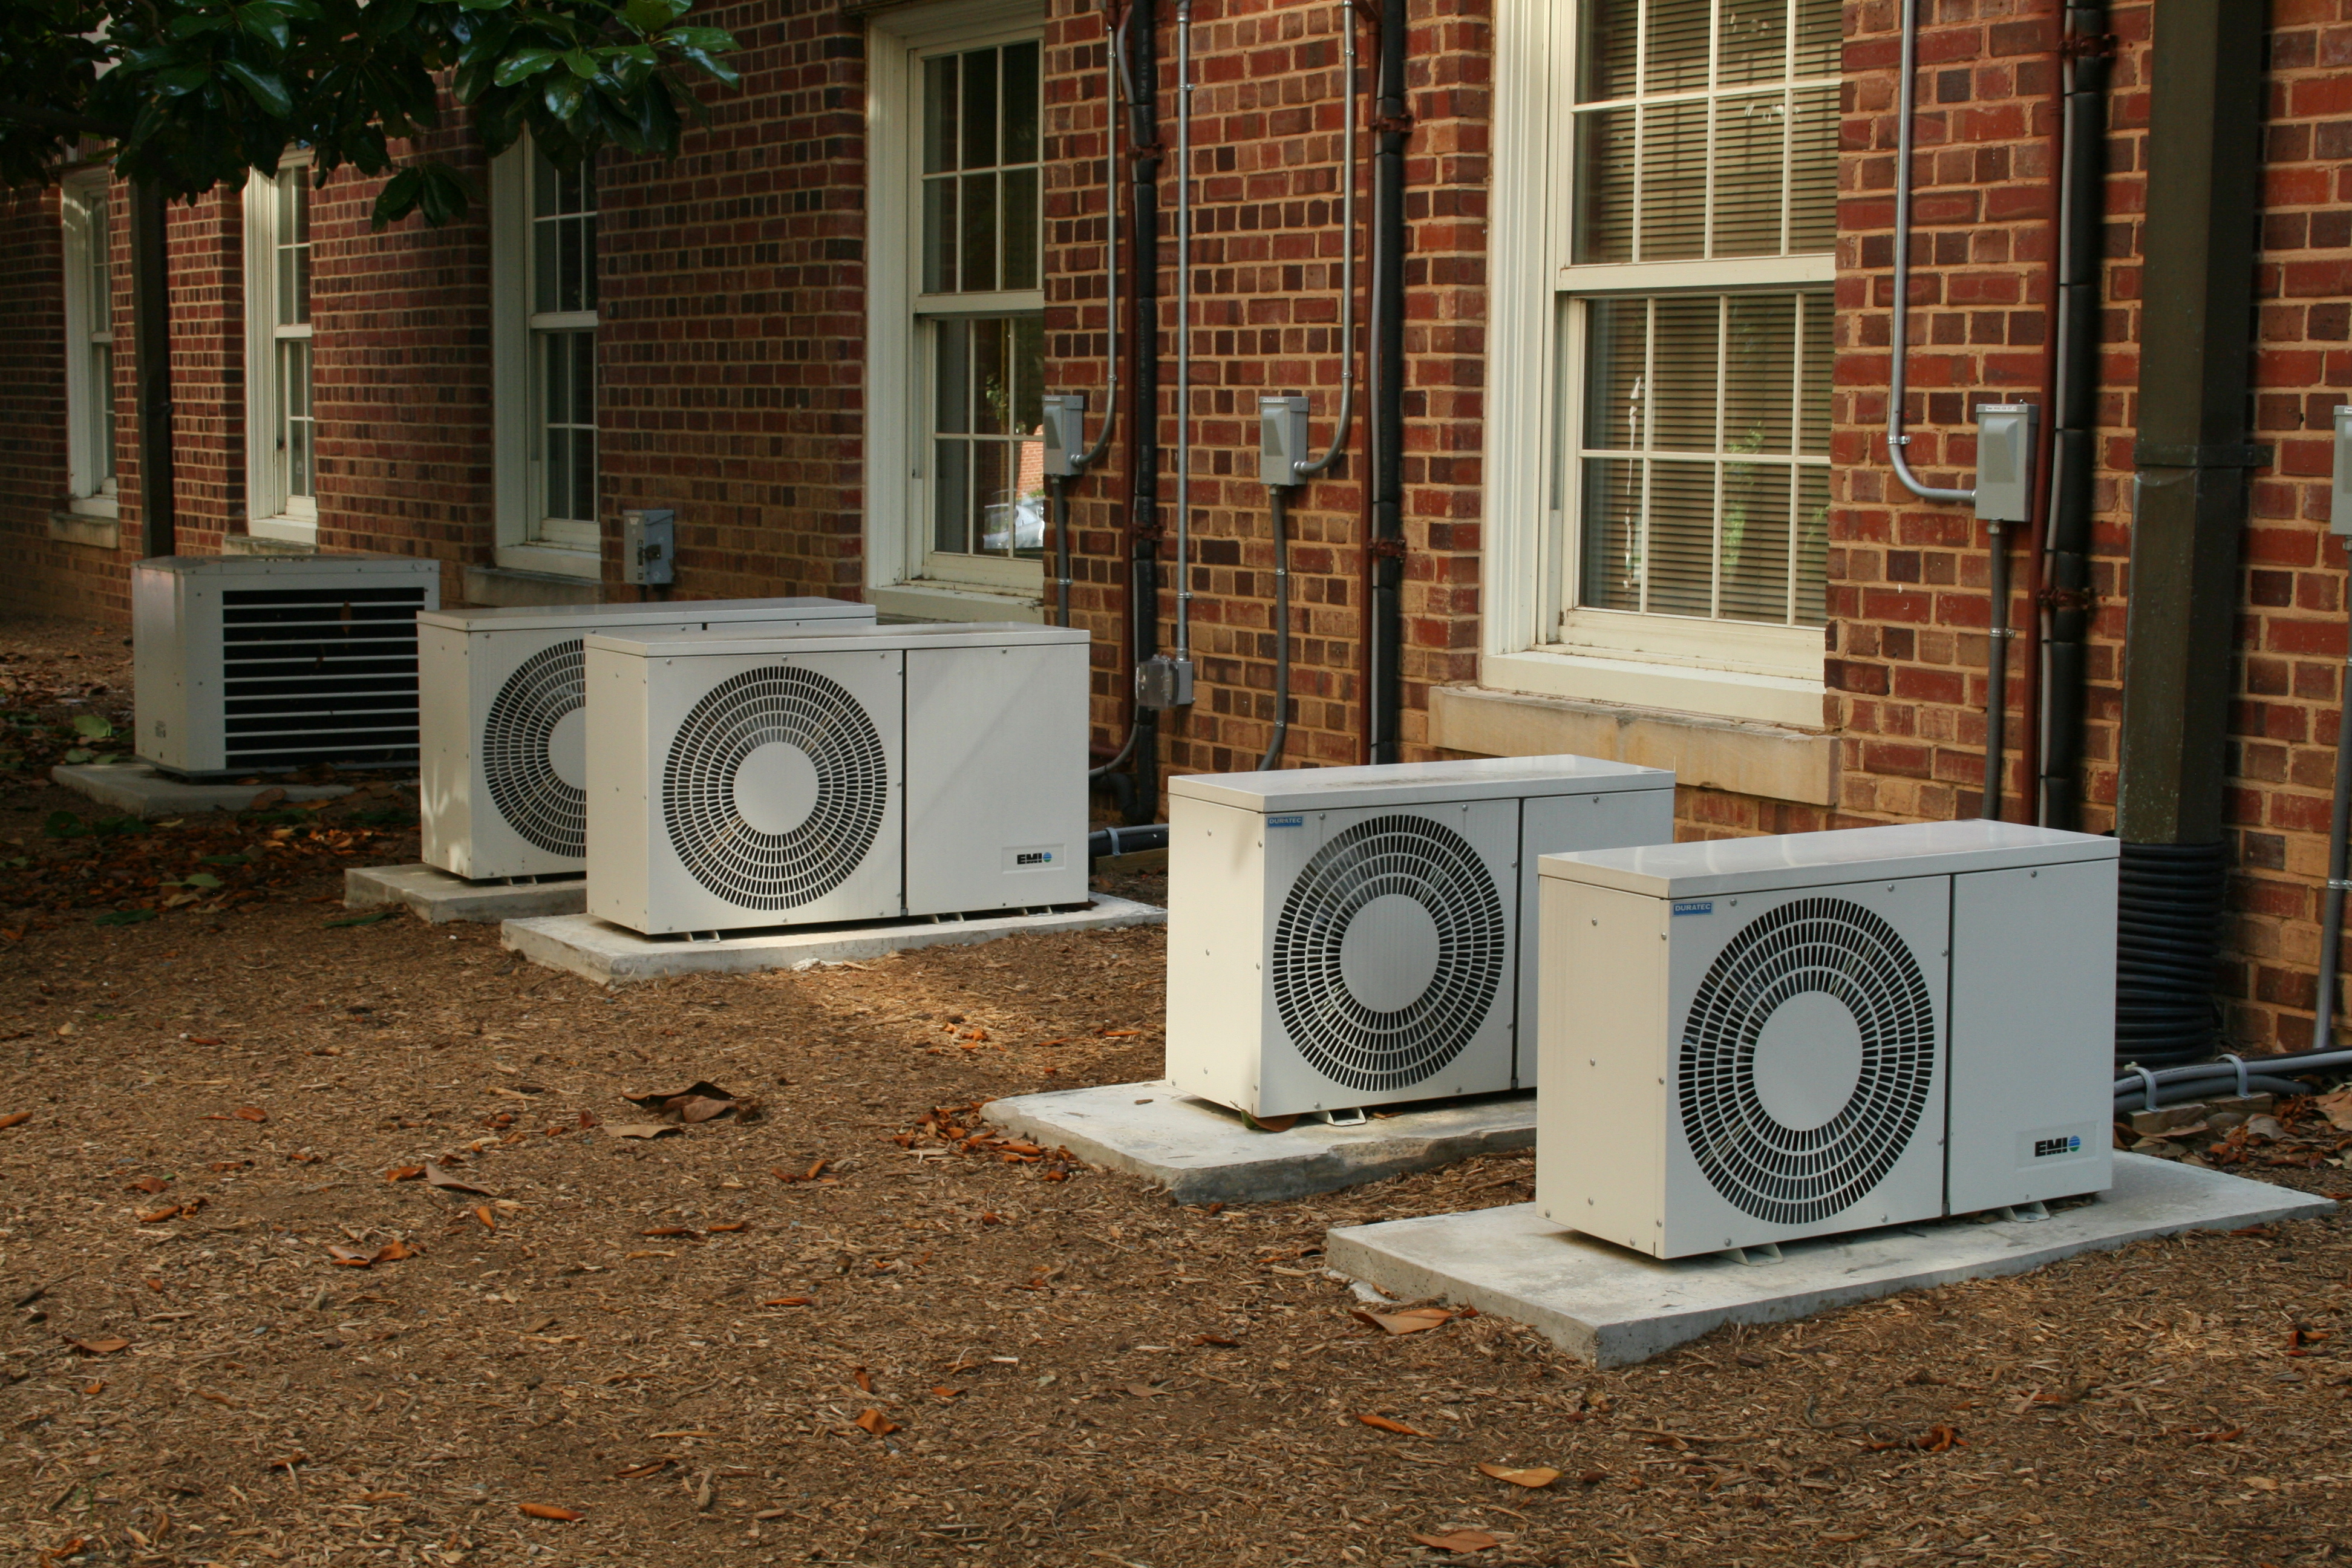 The 9 Best Air Conditioners of 2019 Shop for the best portable and widow air conditioners on the market The spruce